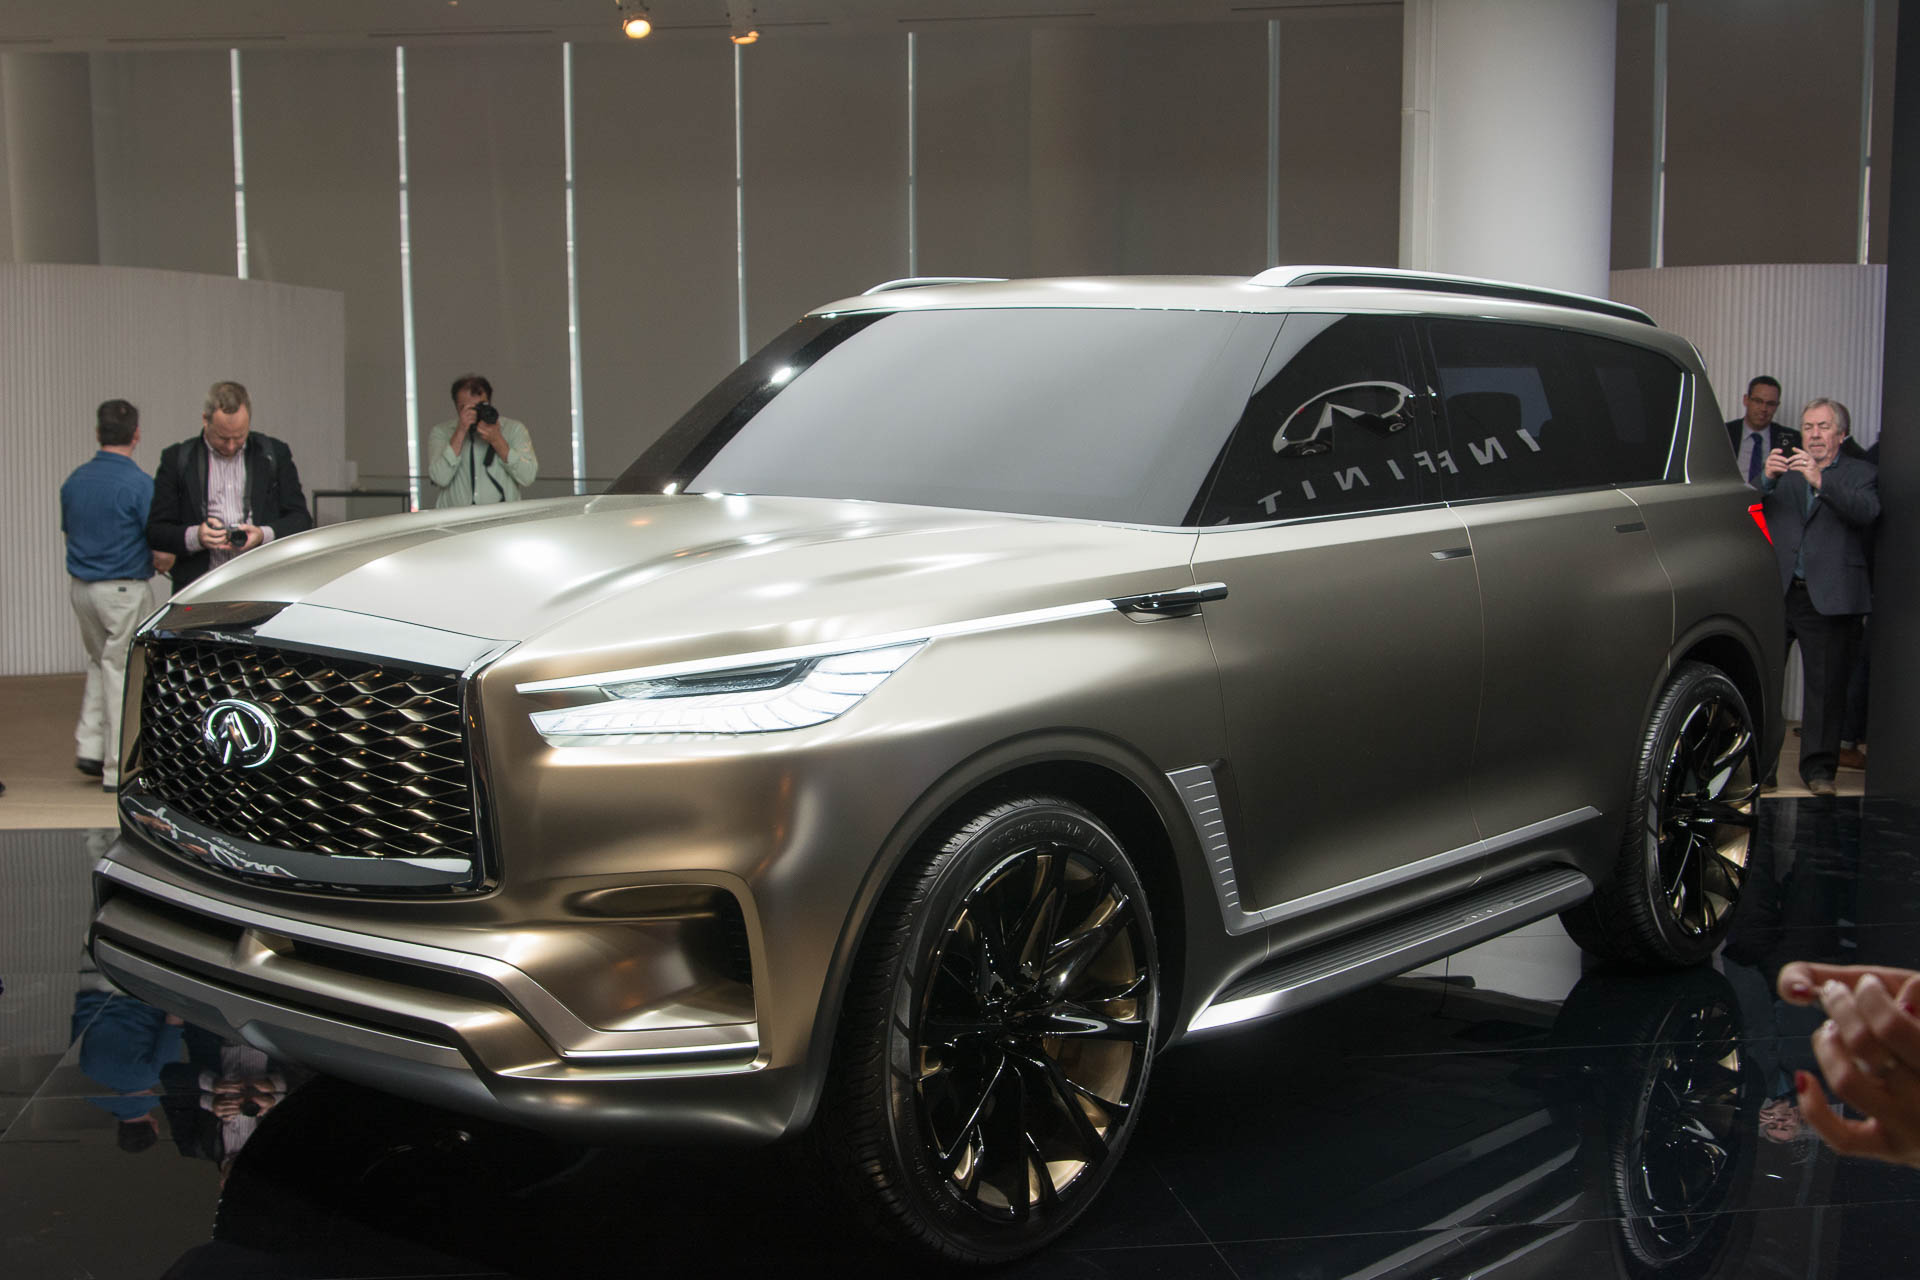 64 A 2020 Infiniti Qx80 Suv Wallpaper